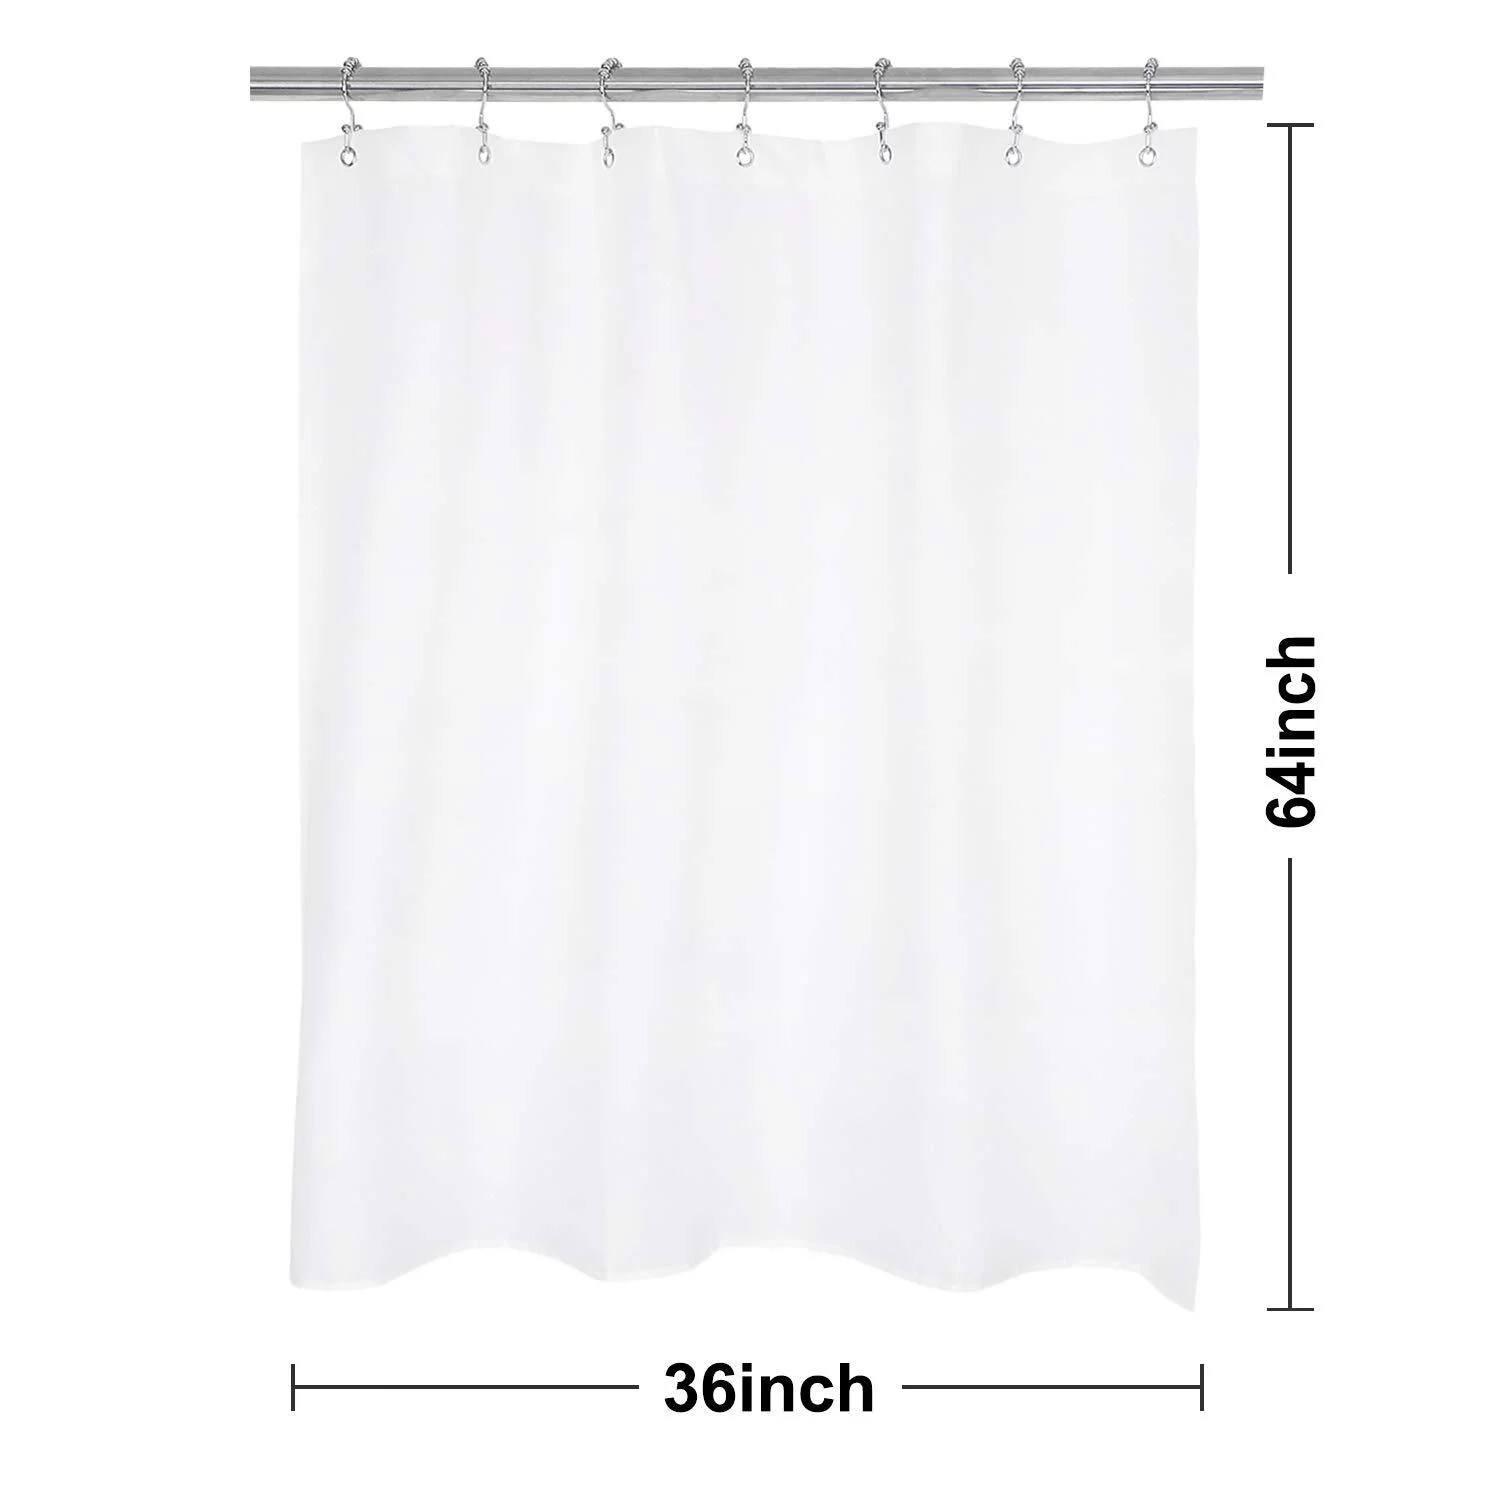 n y home rv shower curtain or liner 36 w x 64 h with magnets washable fabric water repellent white bathroom curtains with grommets 36x64 36 x64